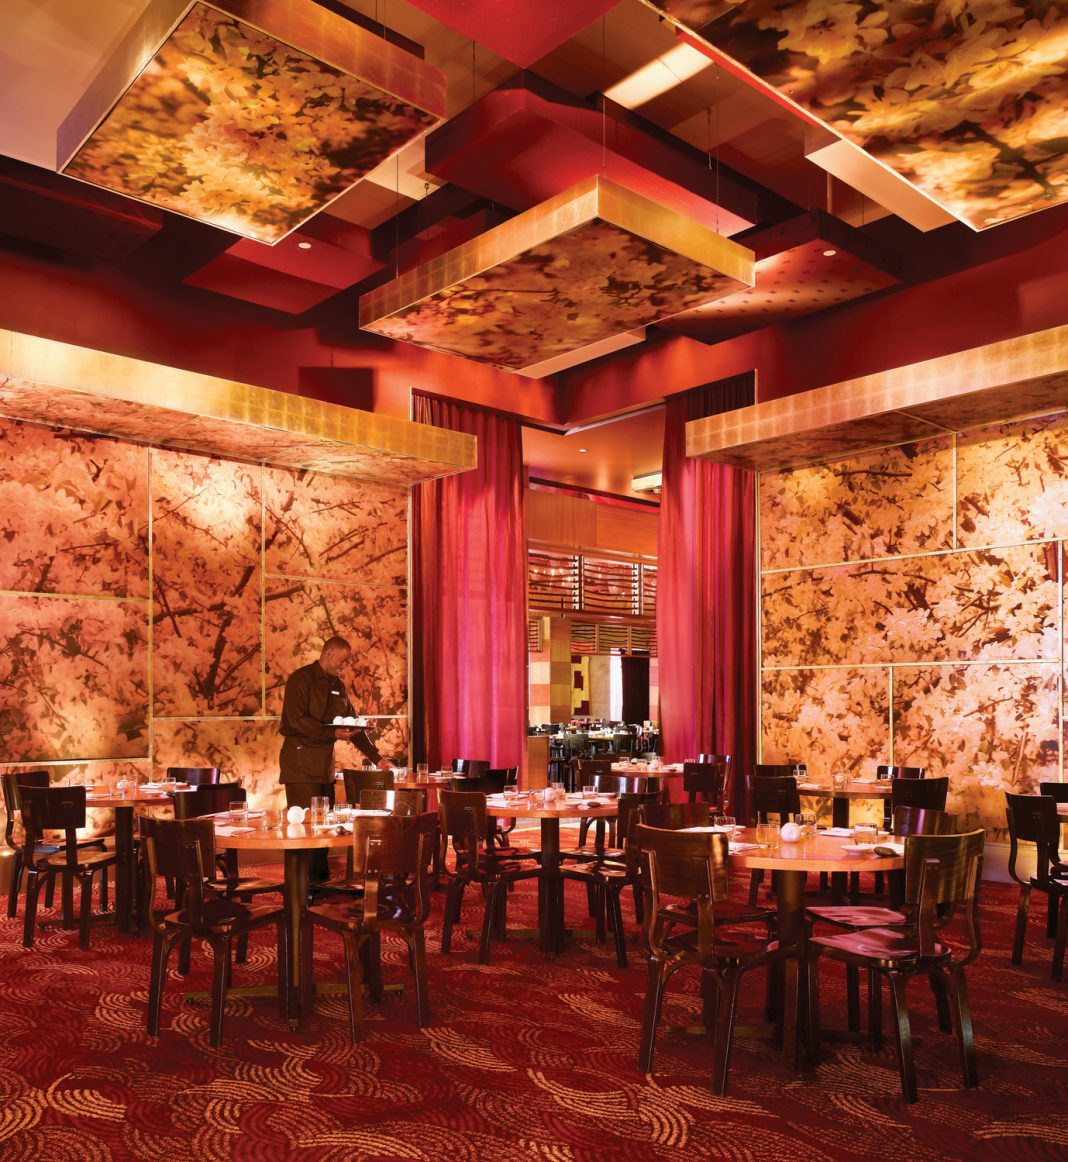 Nobu, at Atlantis Paradise Island, helped spread the star chef craze to the Caribbean.